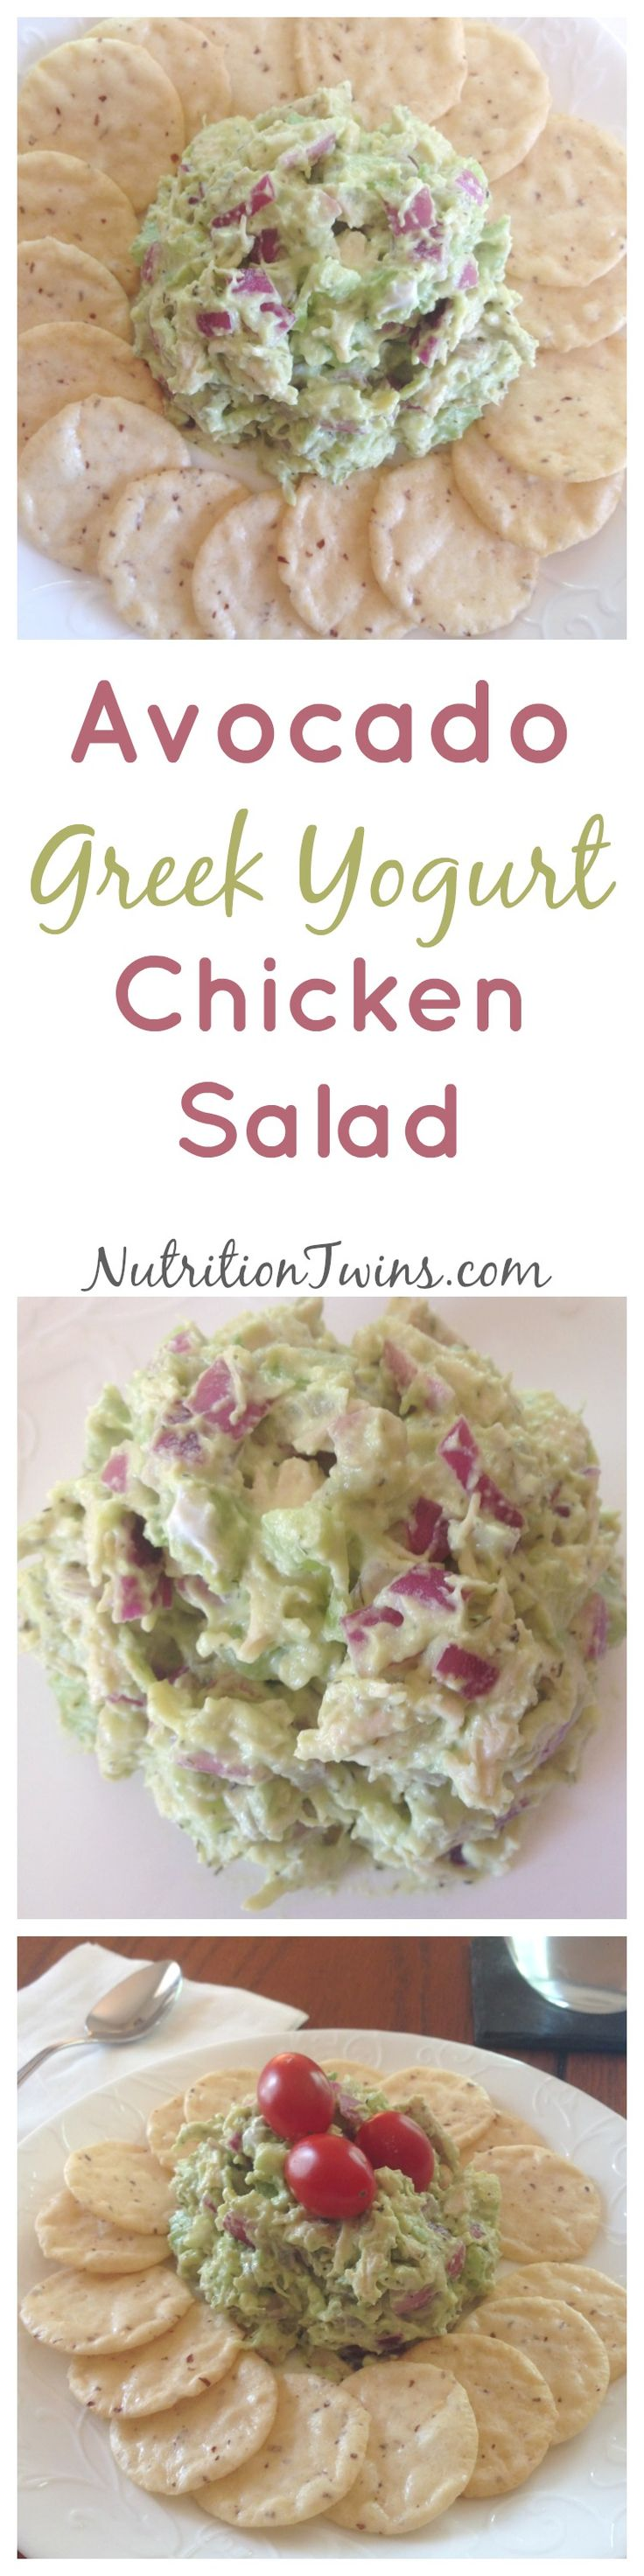 Avocado Greek Yogurt Chicken Salad| Only 177 Calories | Packed with protein (20 grams) for satiation | Easy Weekday Lunch | For MORE Nutrition & Fitness Tips & RECIPES please SIGN UP for our FREE NEWSLETTER www.NutritionTwins.com